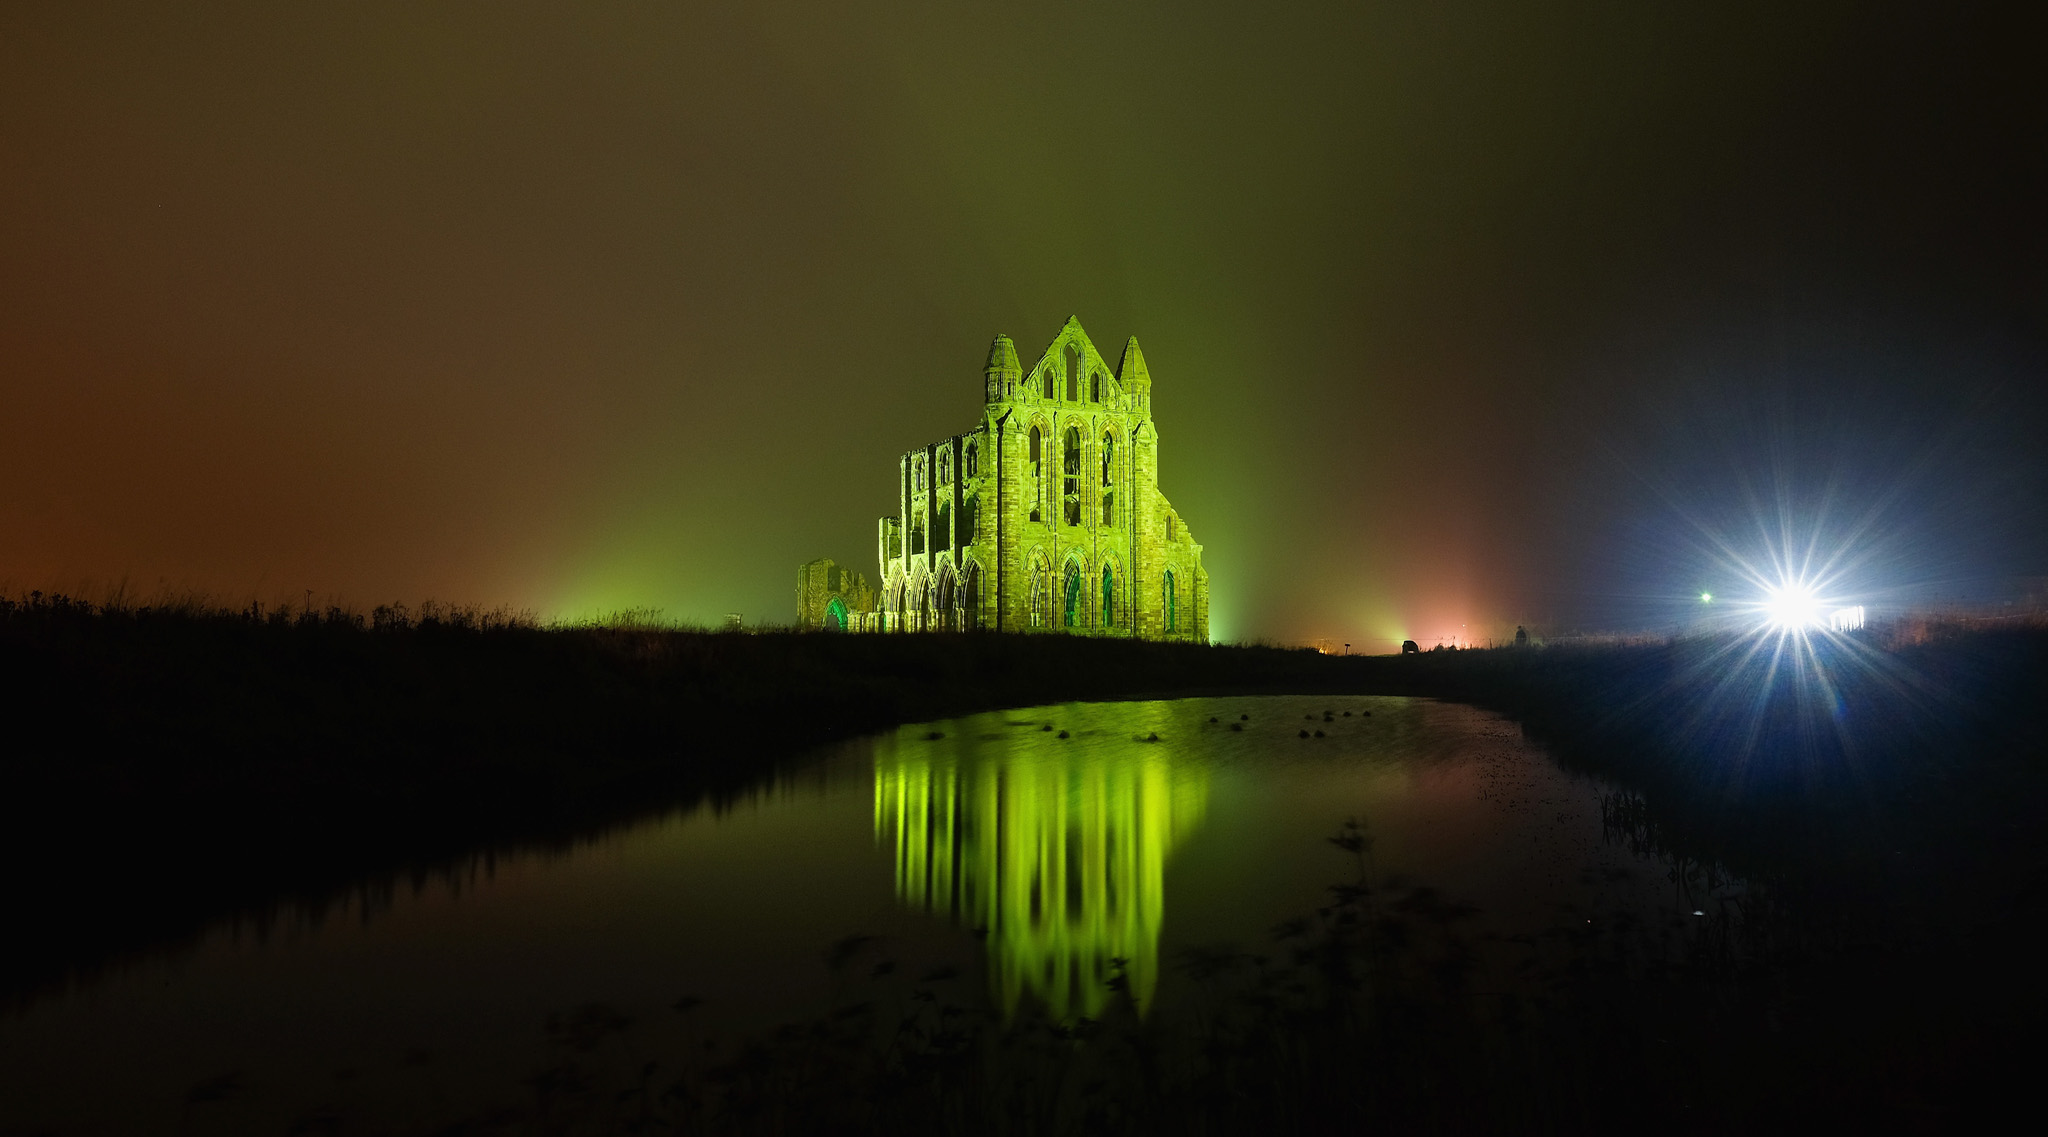 Whitby Abbey Seen In A New Light As Its Bathed In Dramatic Illuminations...WHITBY, ENGLAND - OCTOBER 27: A spectacular light display illuminates the historic Whitby Abbey on October 27, 2015 in Whitby, England. The famous Benedictine abbey will be illuminated over four nights to coincide with Halloween and the popular Whitby Goth Weekend. The Abbey was part of the inspiration for Bram Stoker's novel, Dracula, and sits on East Cliff in the town in a commanding position overlooking the North Sea. (Photo by Ian Forsyth/Getty Images)